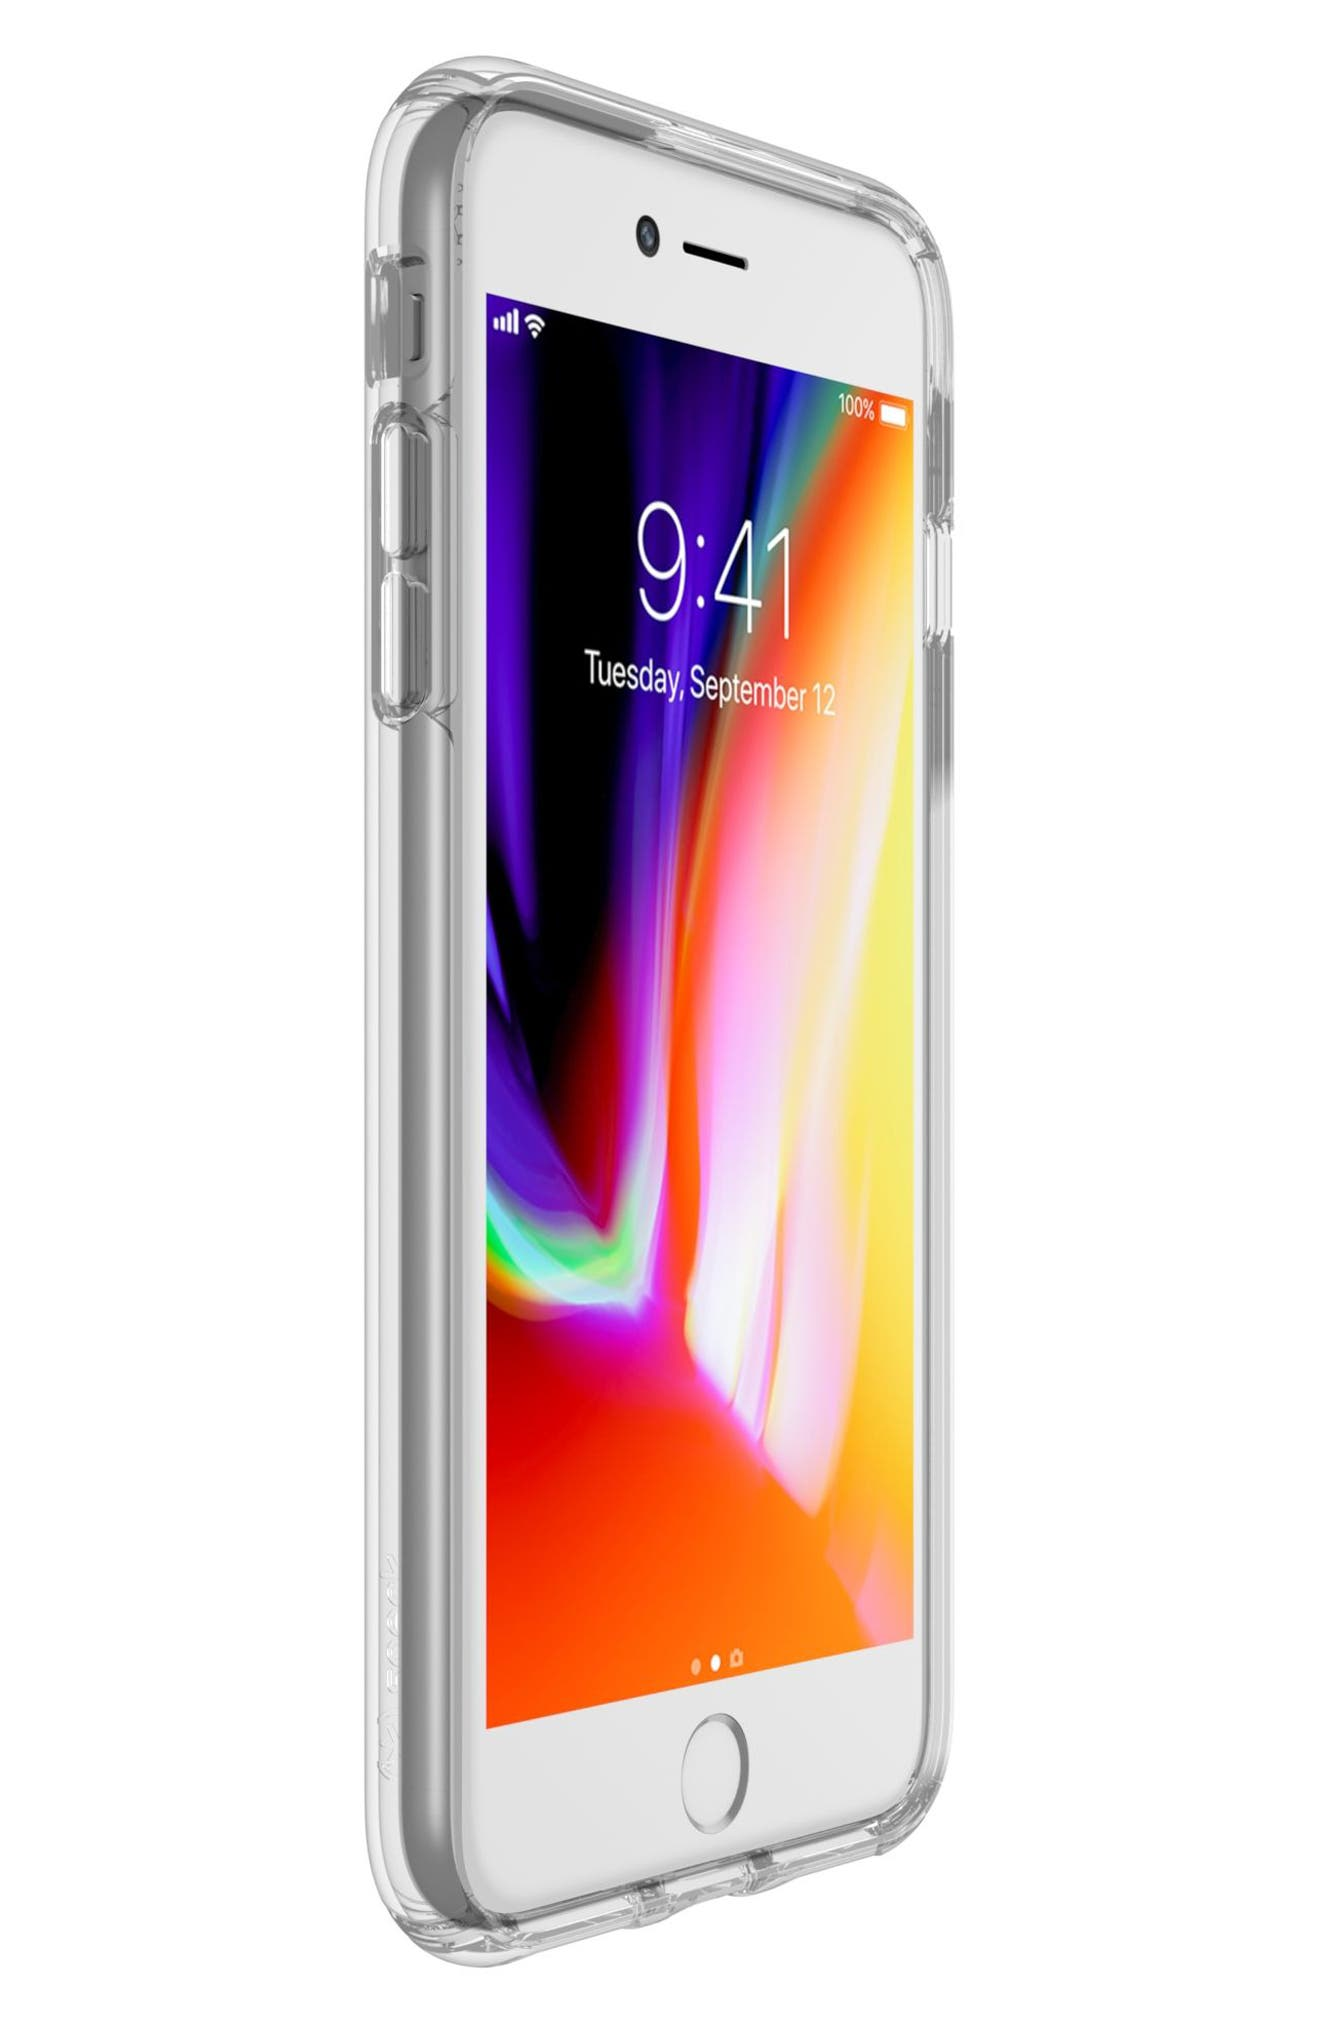 iPhone 6/6s/7/8 Plus Case,                             Alternate thumbnail 7, color,                             CLEAR/ CLEAR